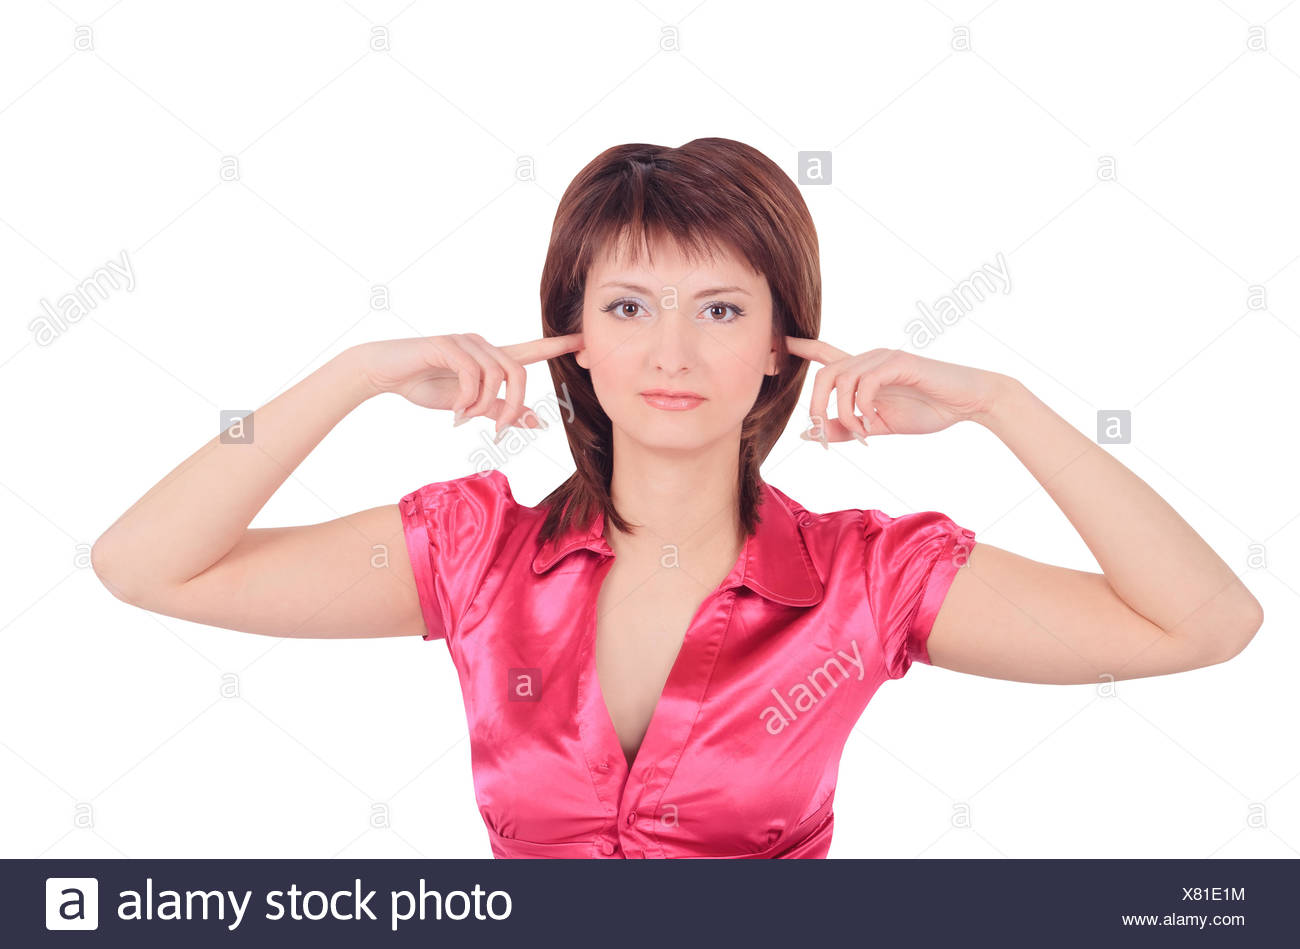 picture of woman with hands on ears - Stock Image